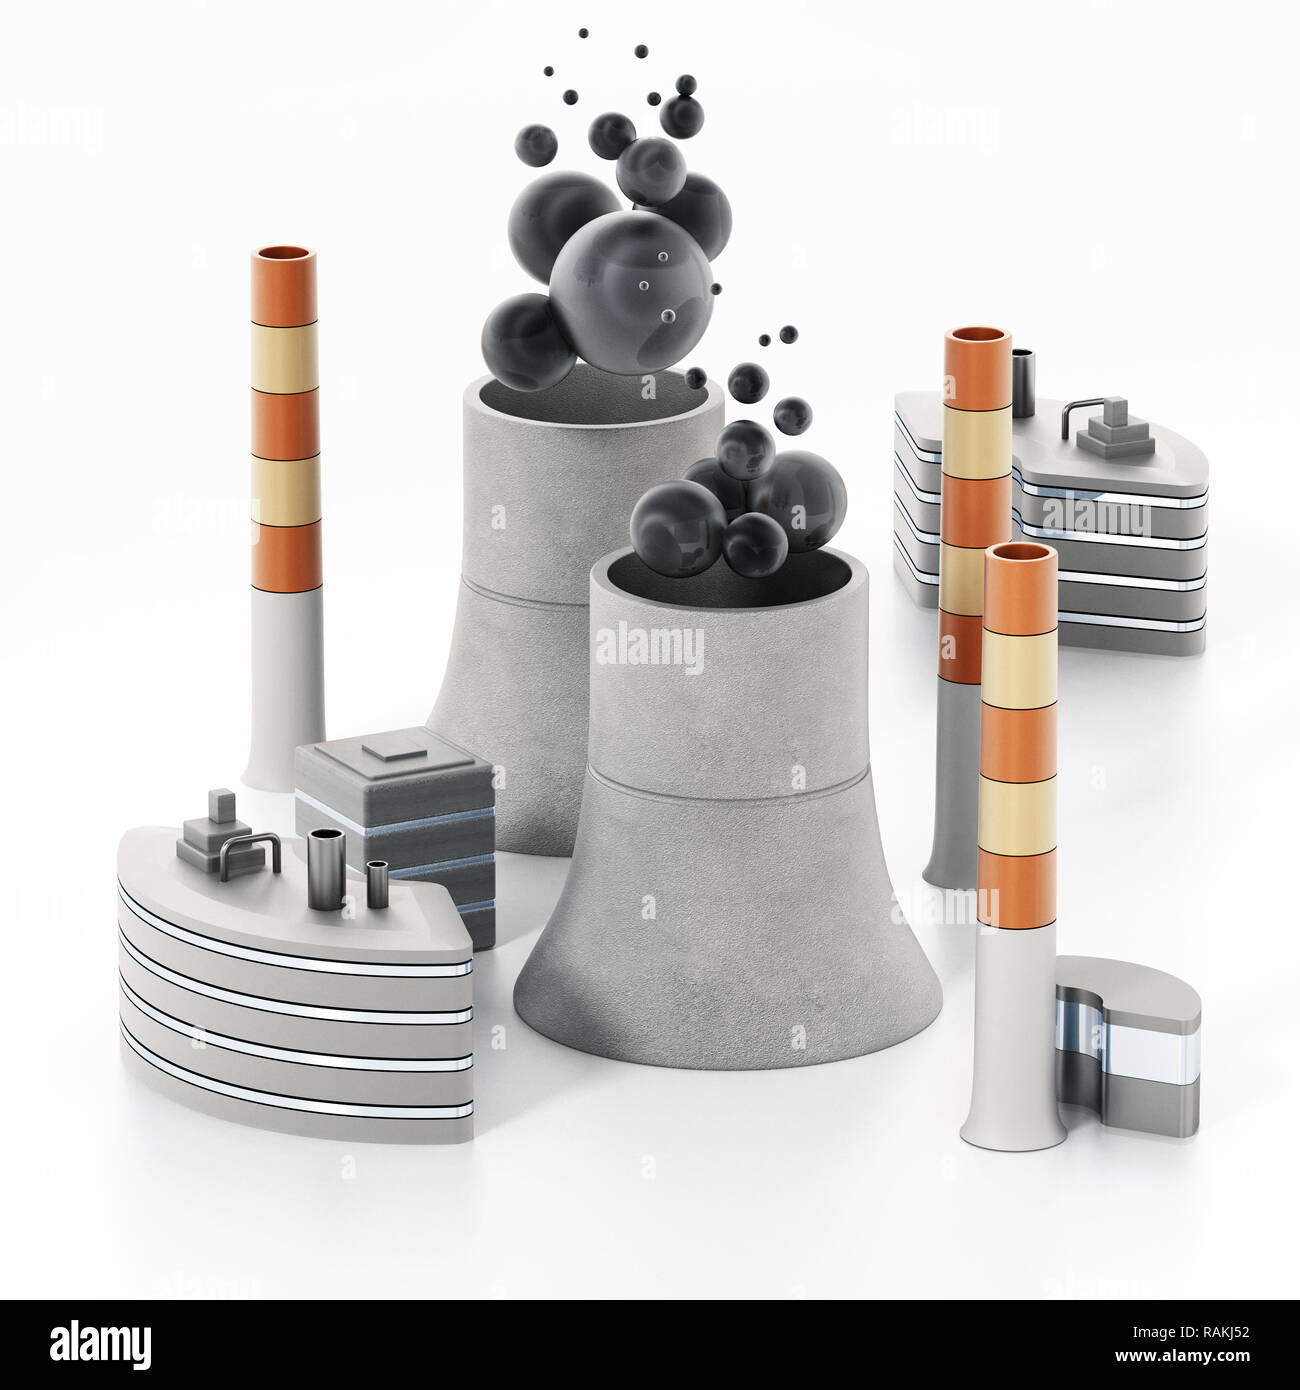 Nuclear plant isolated on white background. 3D illustration. - Stock Image